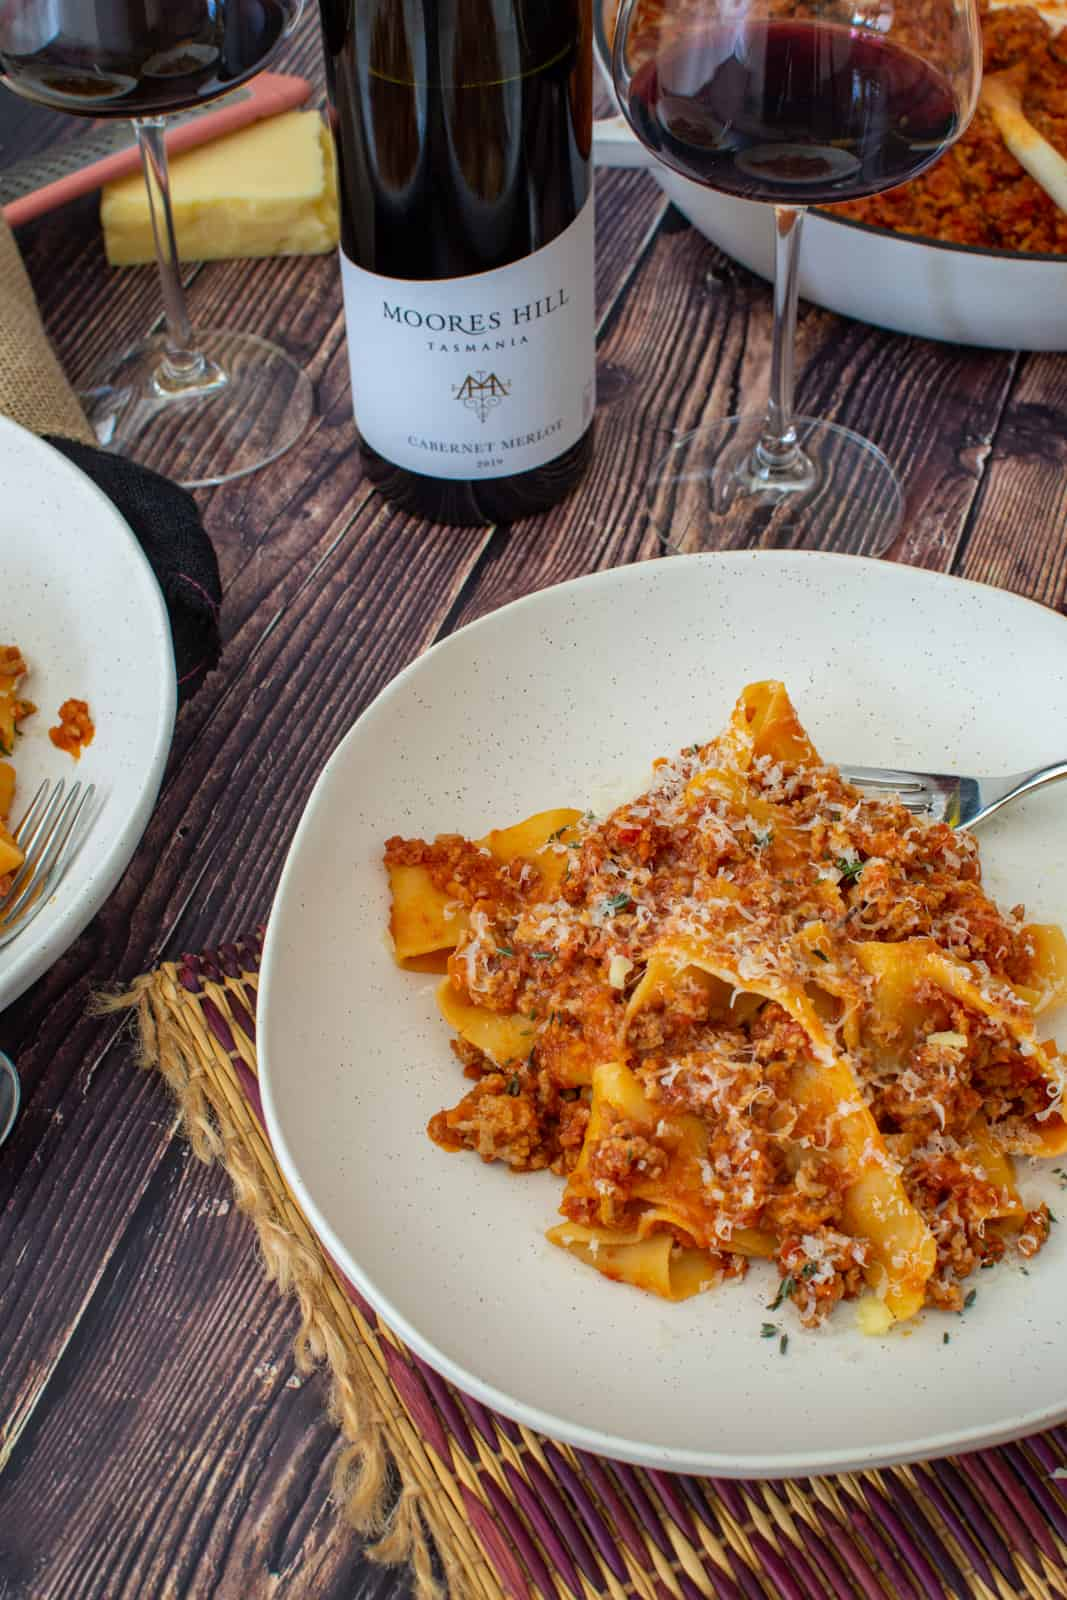 a bowl of pork chorizo ragu, moores hill red wine and casserole dish on a wooden table